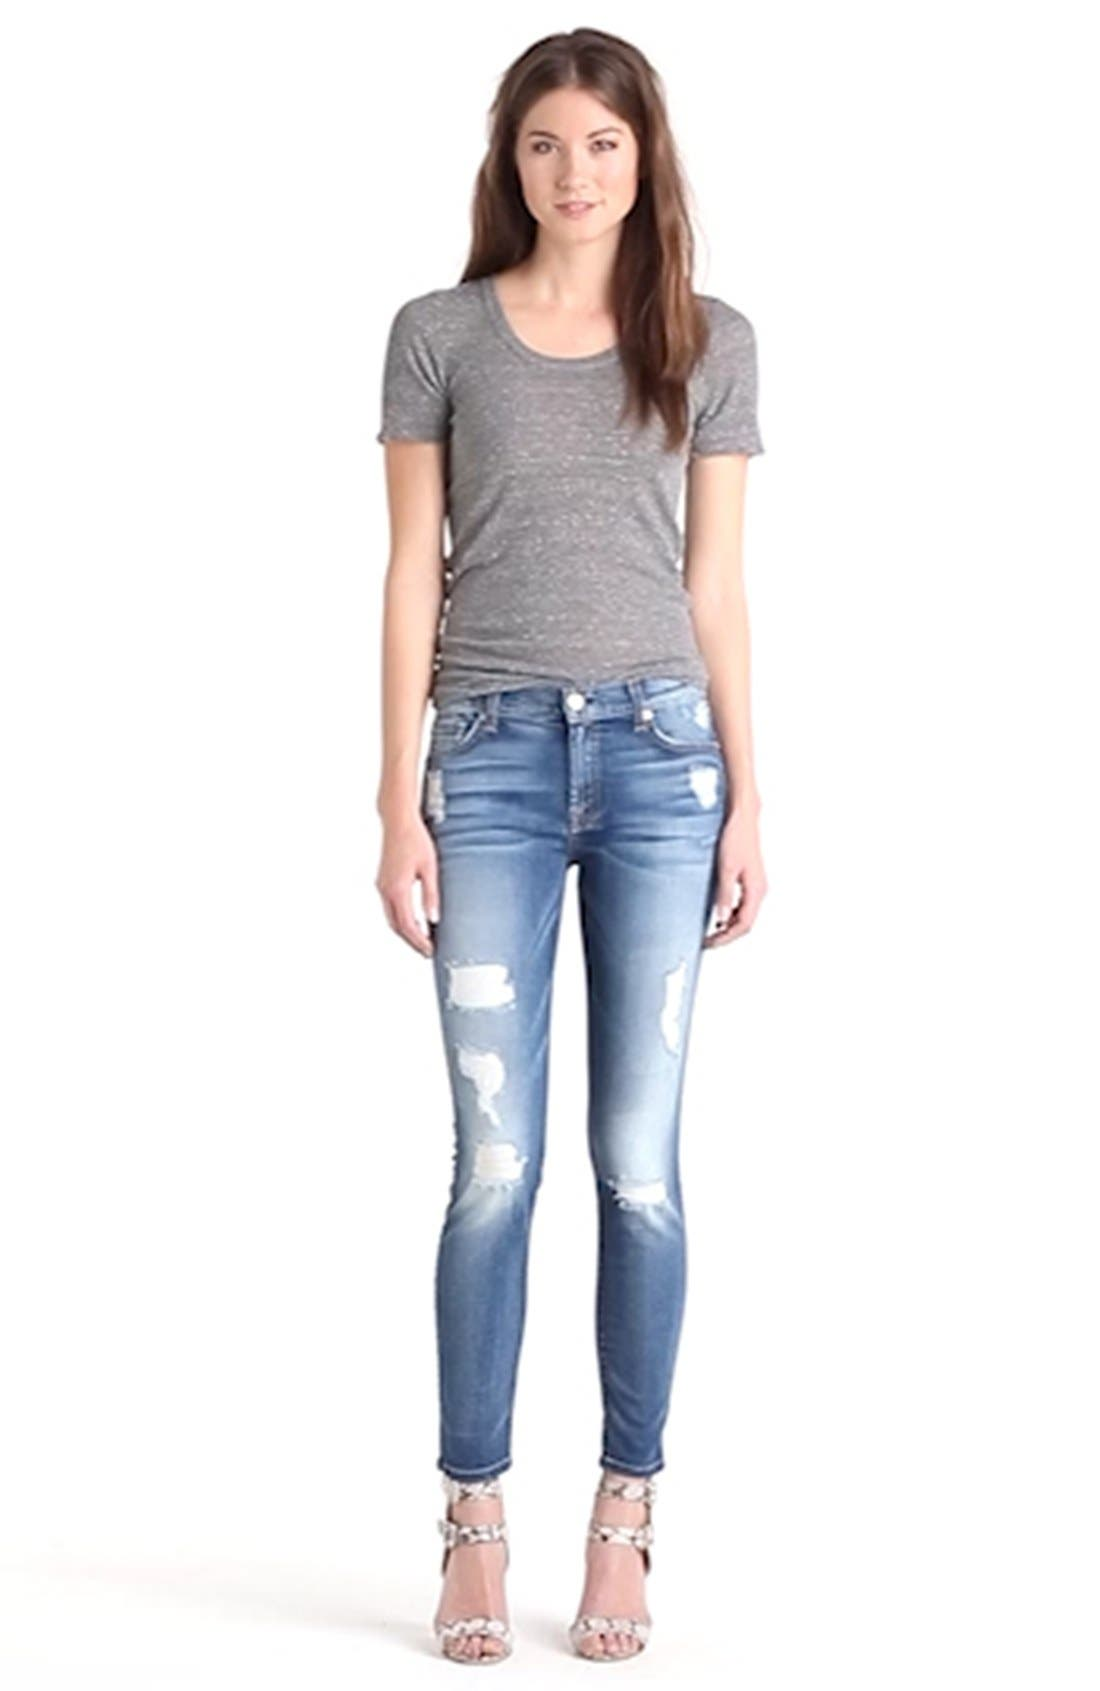 b(air) Ankle Skinny Jeans,                             Alternate thumbnail 8, color,                             DISTRESSED AUTHENTIC LIGHT